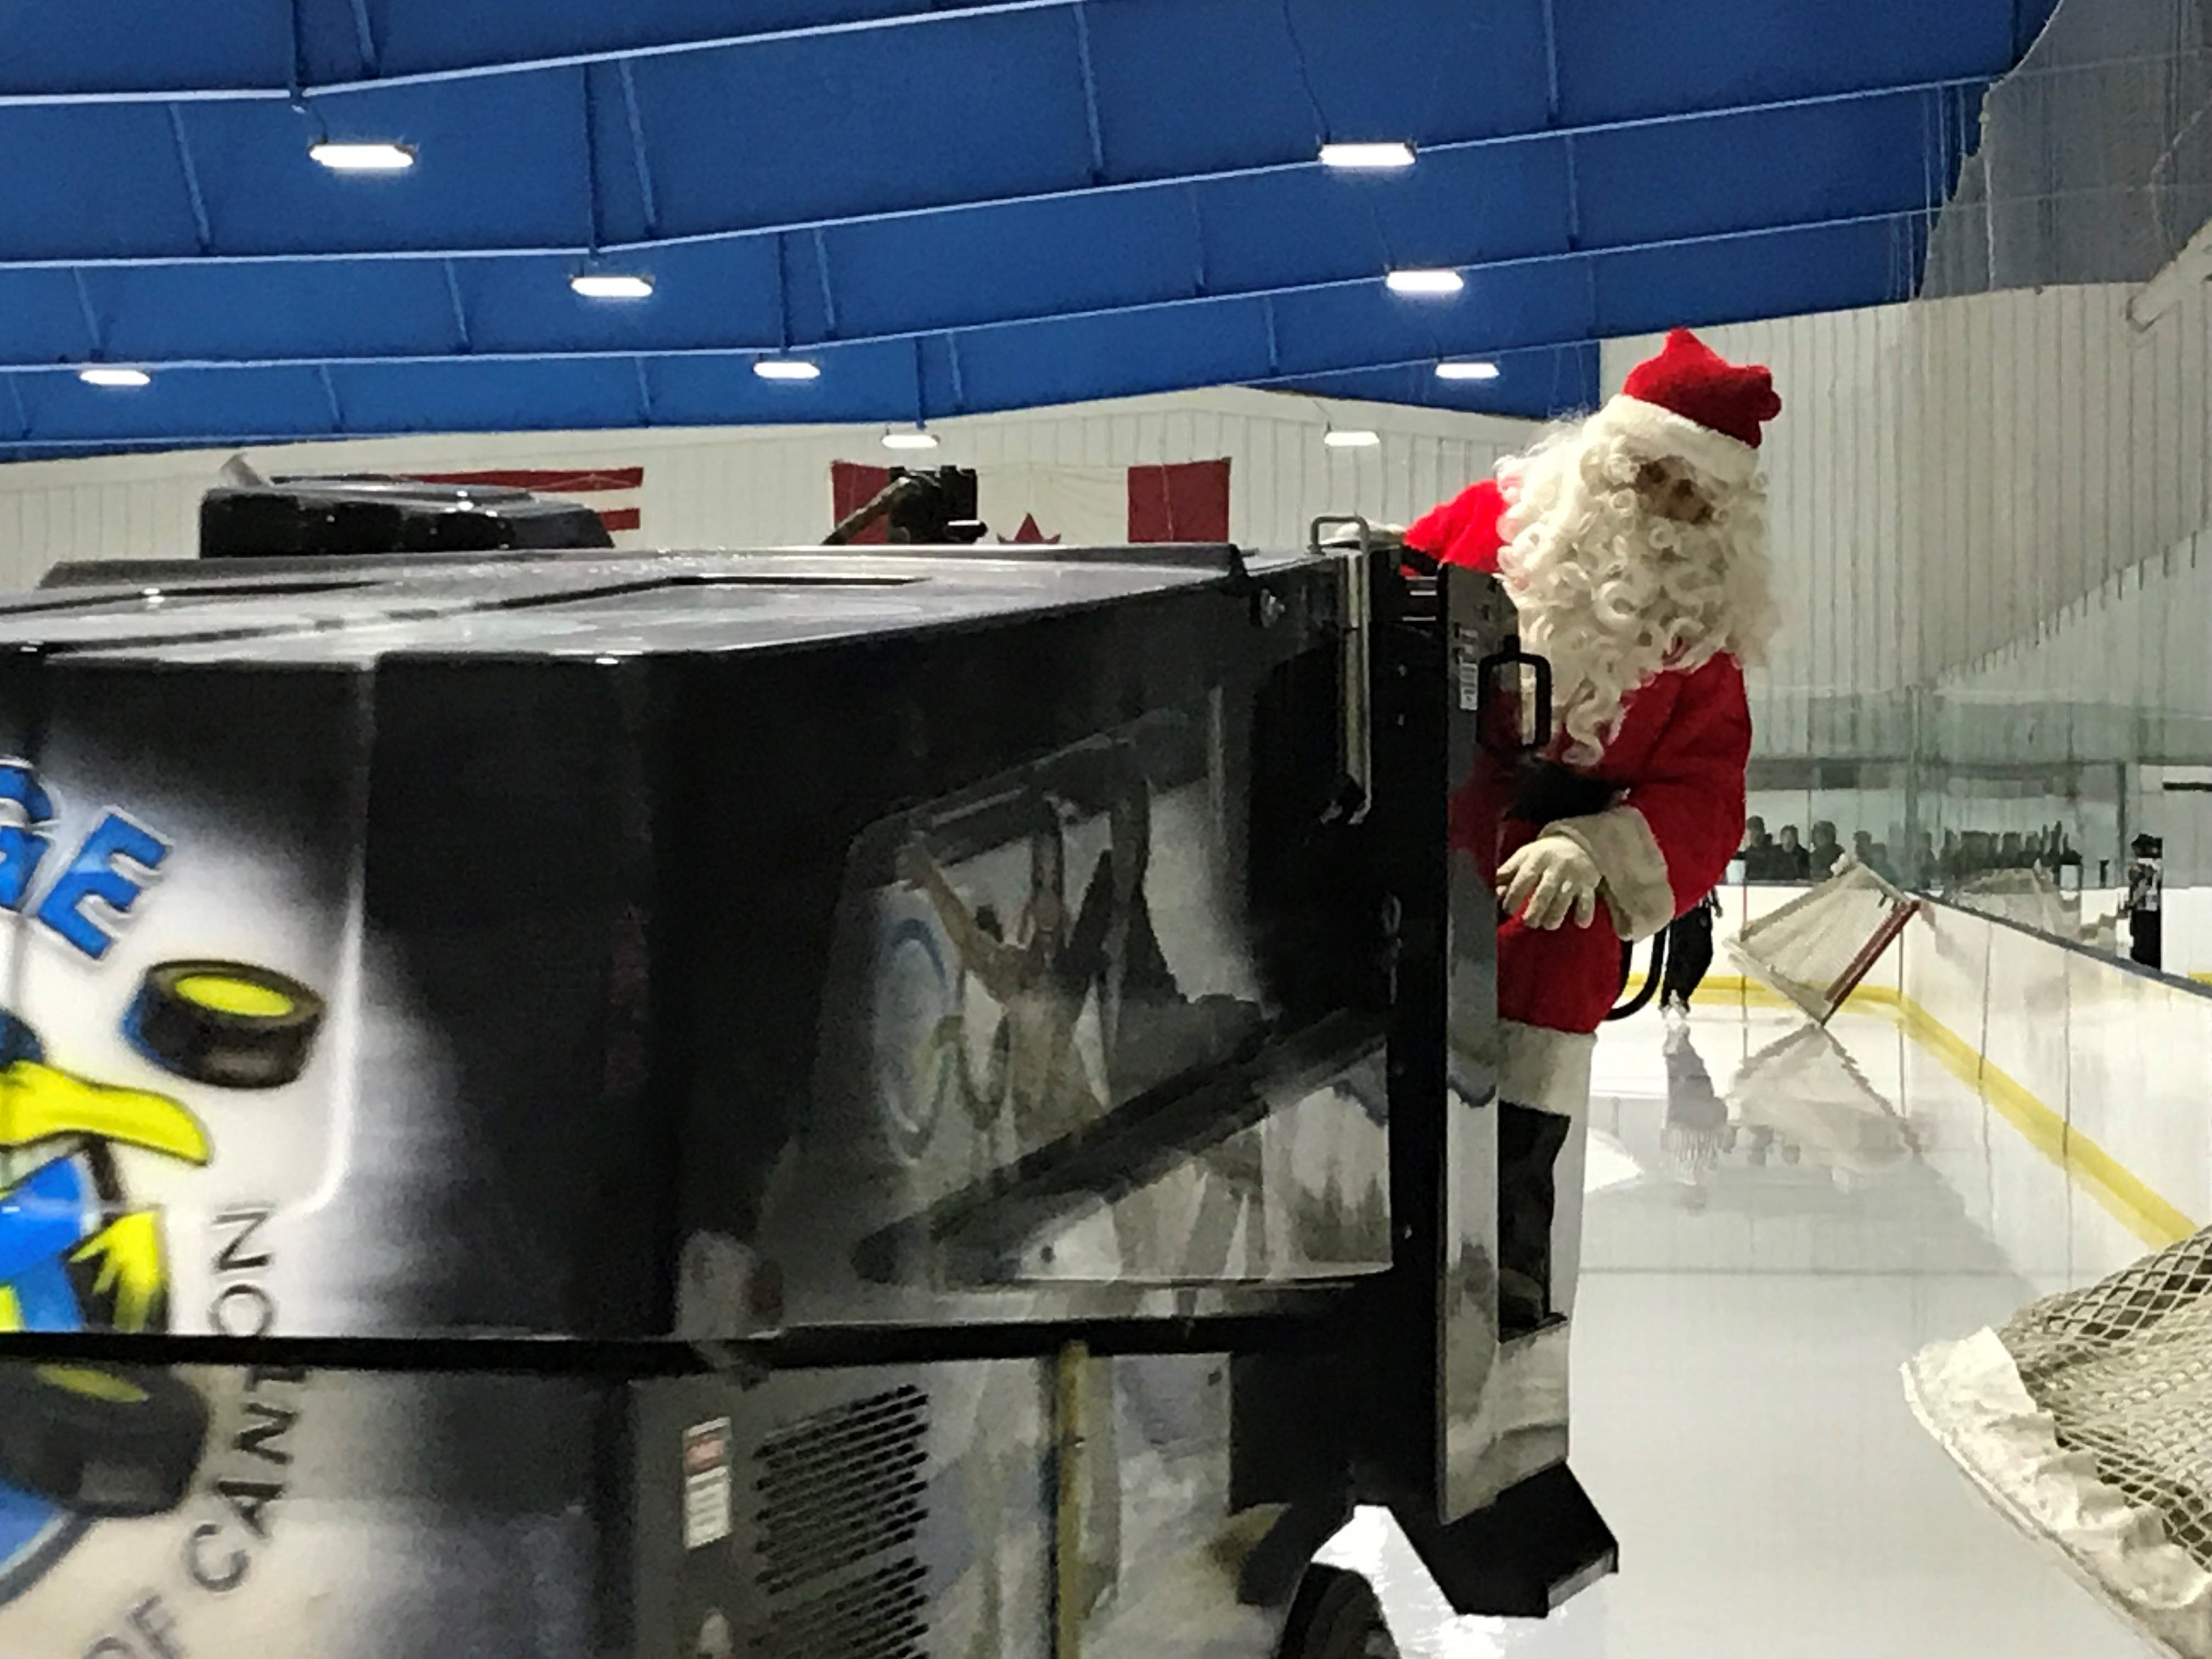 Hockey fans at Arctic Edge in Canton enjoyed a Santa sighting in-between periods.